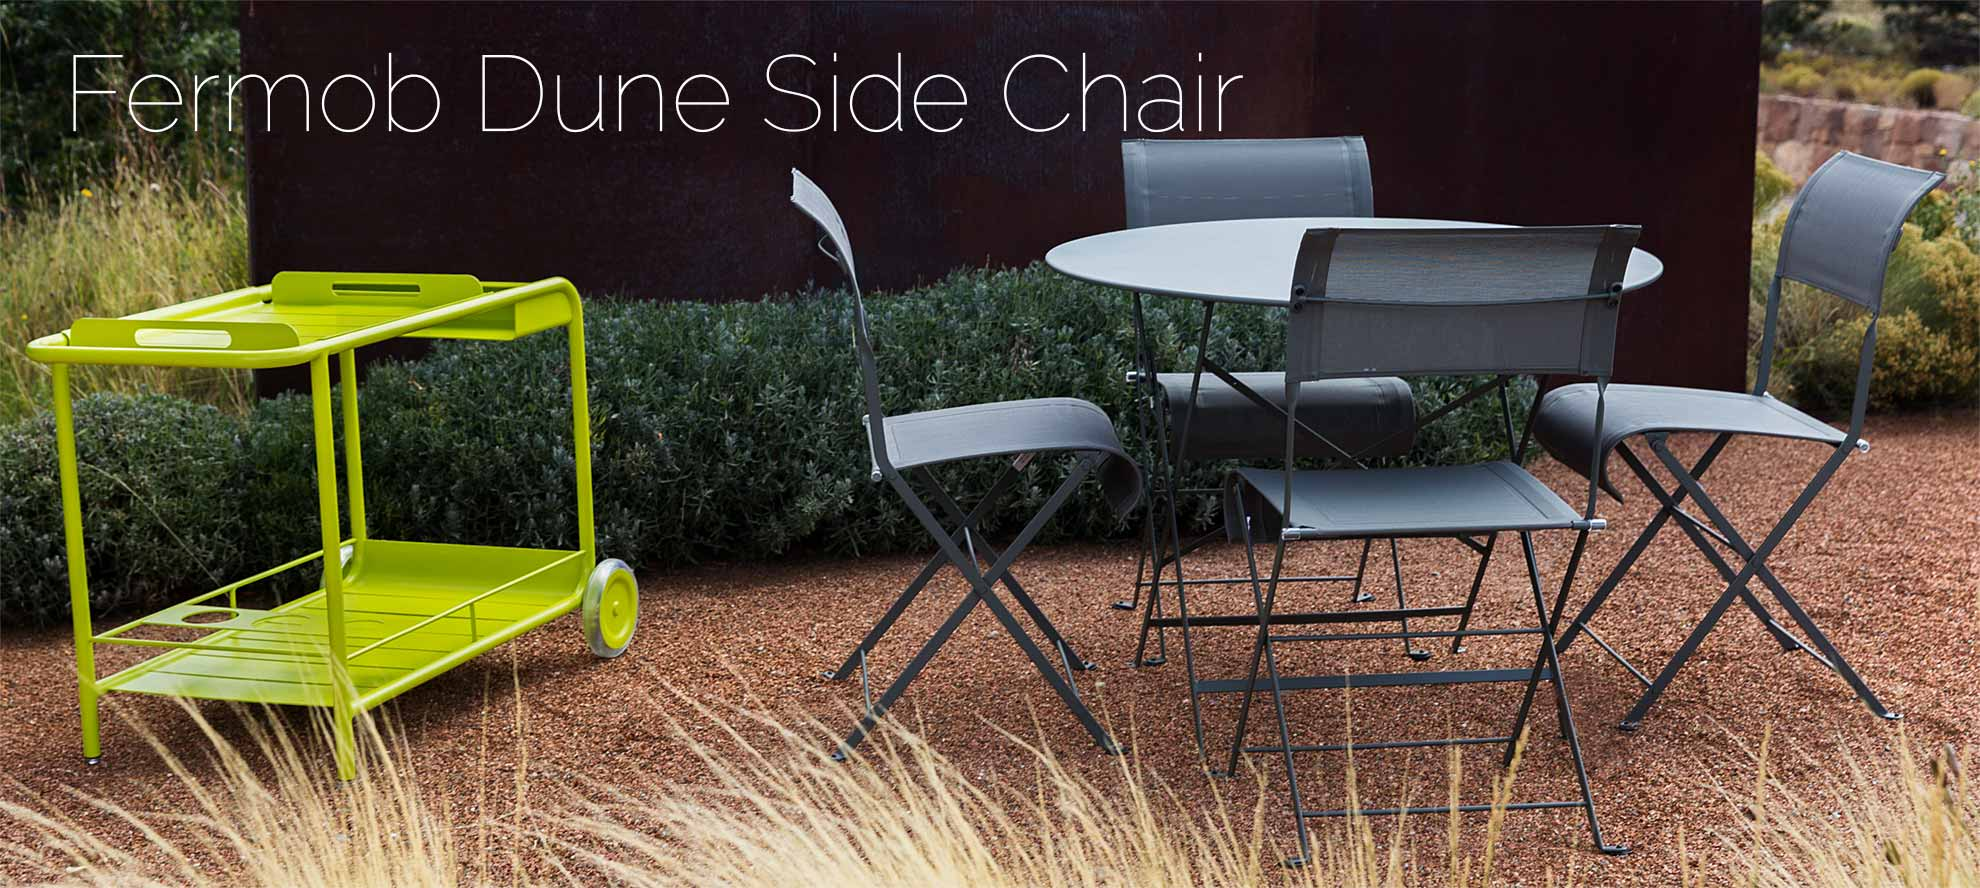 Fermob Dune Side Chair